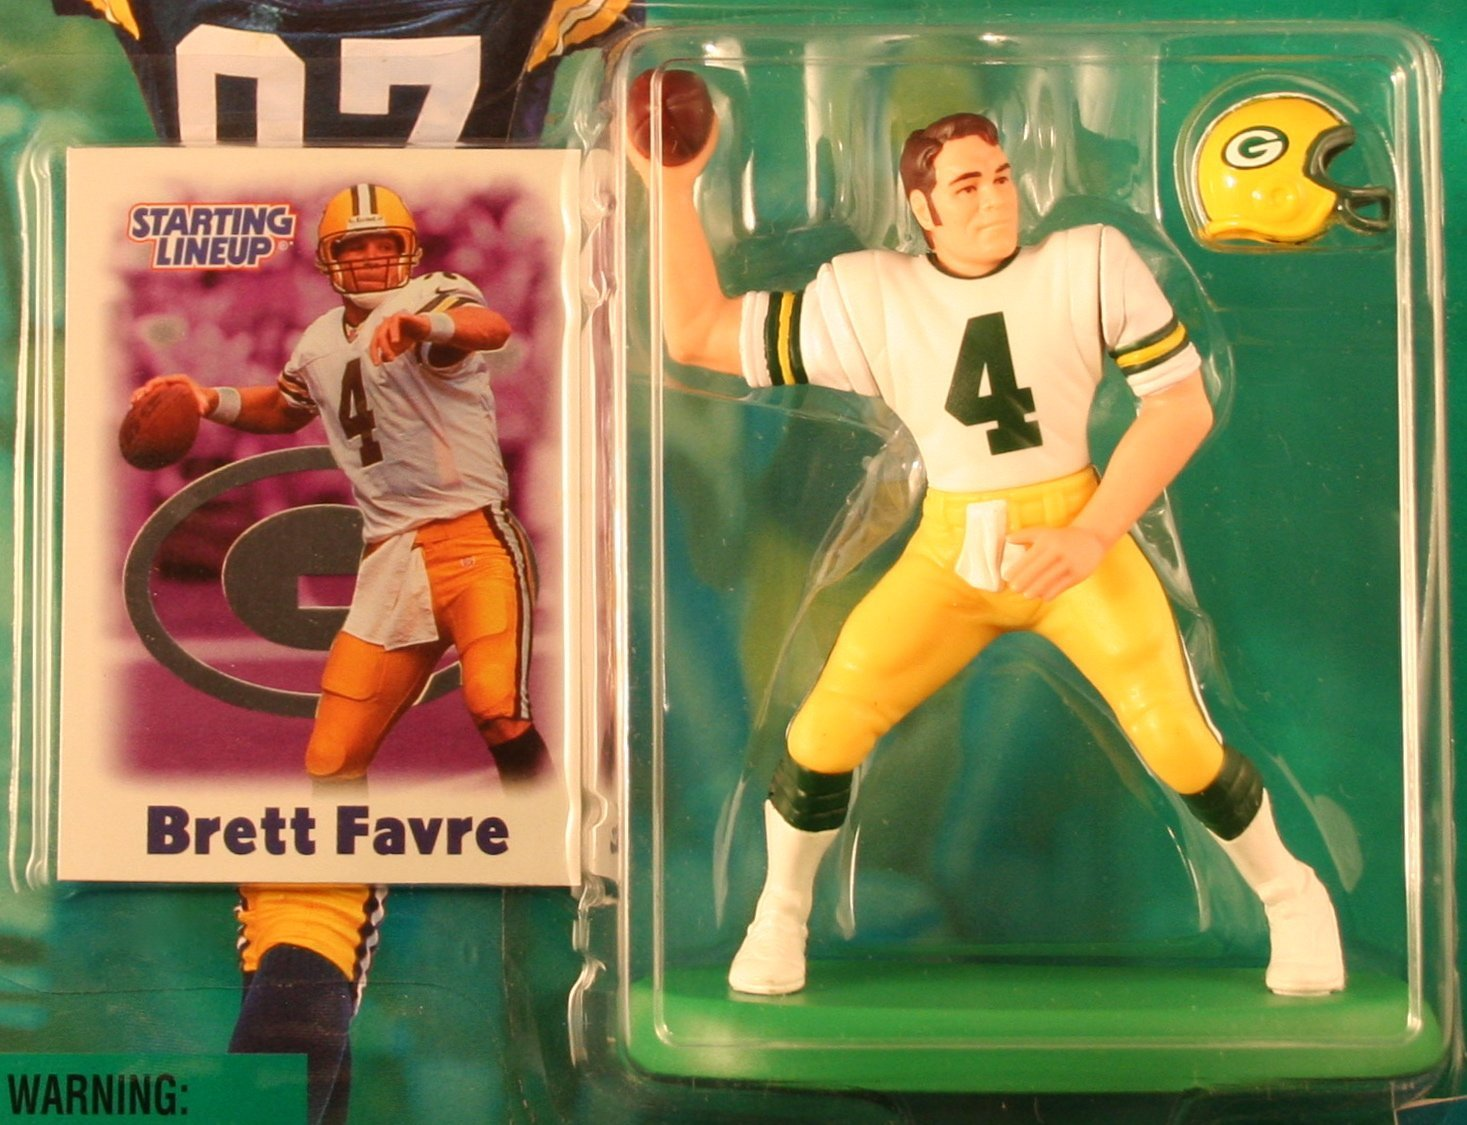 BRETT FAVRE / GREEN BAY PACKERS 2000-2001 NFL Starting Lineup Action Figure & Exclusive NFL Collector Trading Card